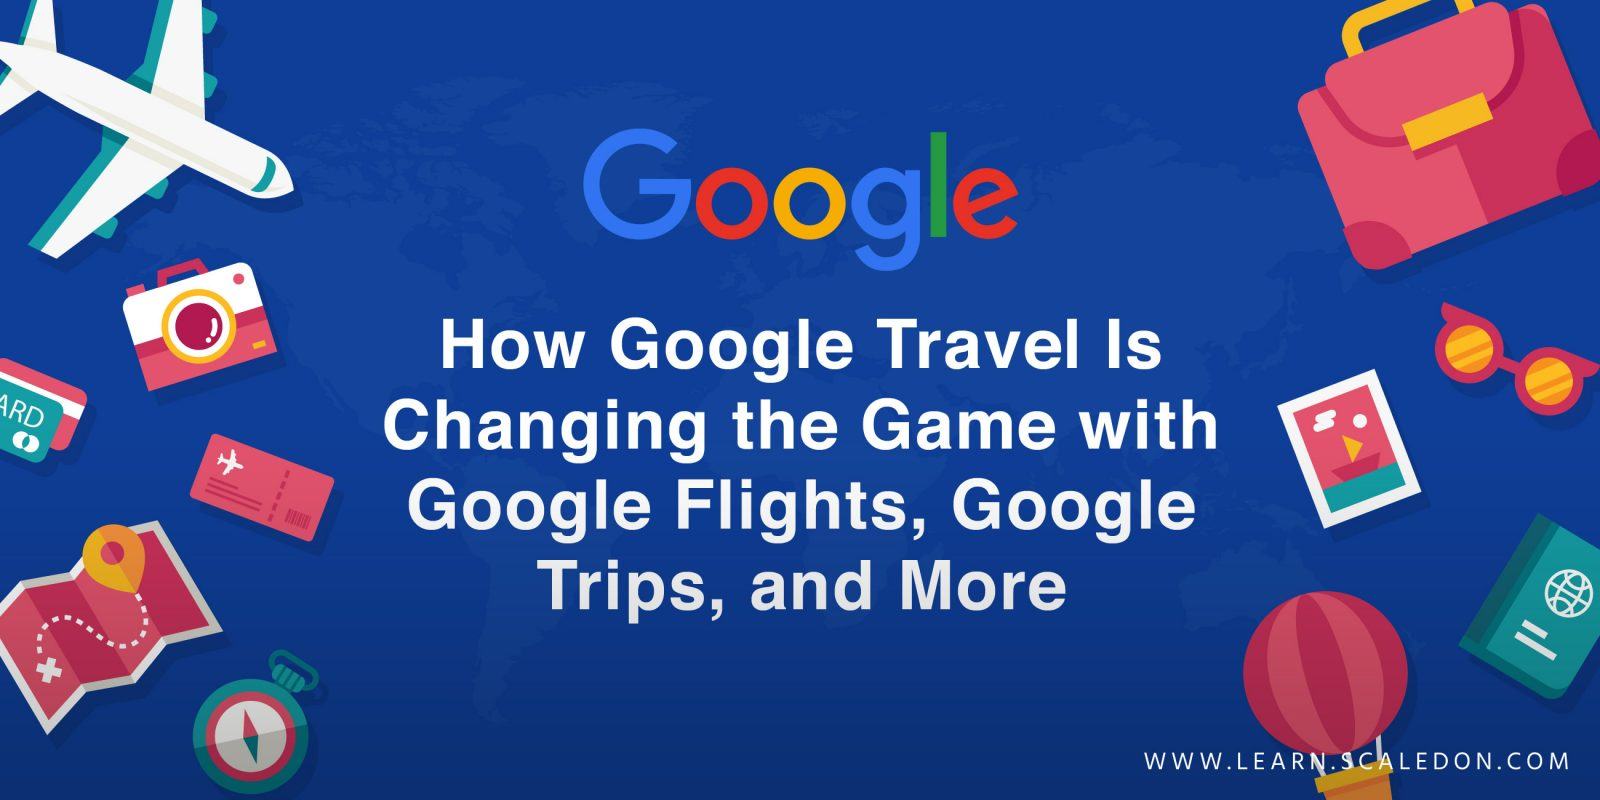 How Google Travel Is Changing the Game with Google Flights, Google Trips, and More